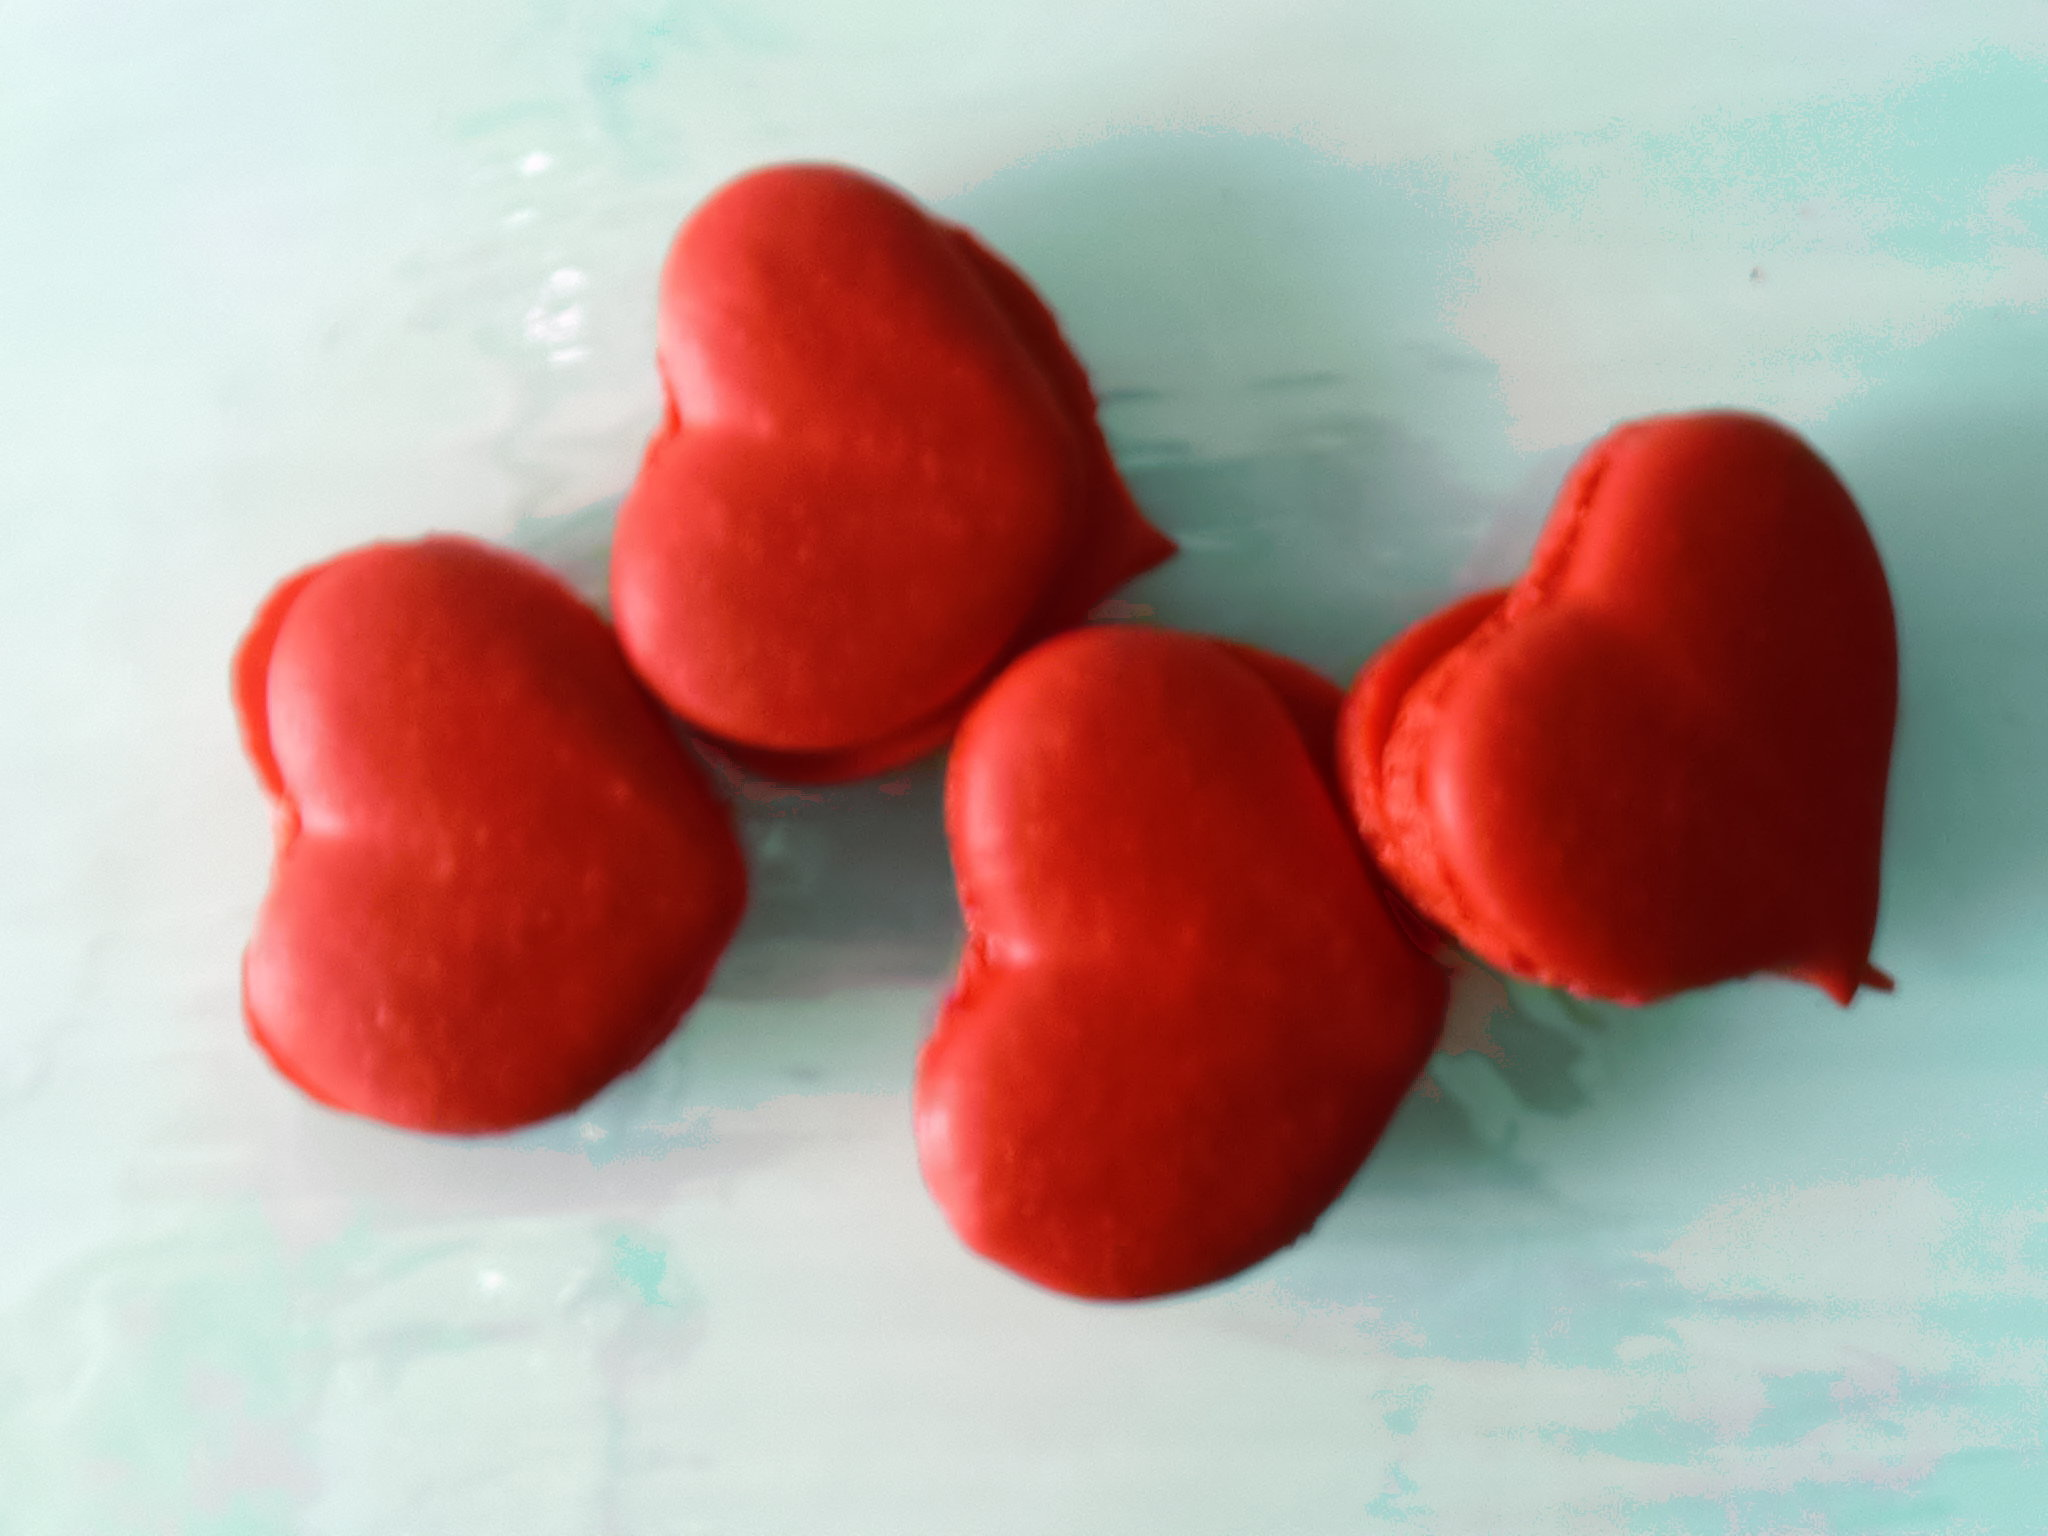 French Macarons With A Twist Just For Valentineu0027s Day. Sweet Confectionery  Will Be Selling Heart Shaped Macarons For Those Looking For The Perfect  Gift For ...